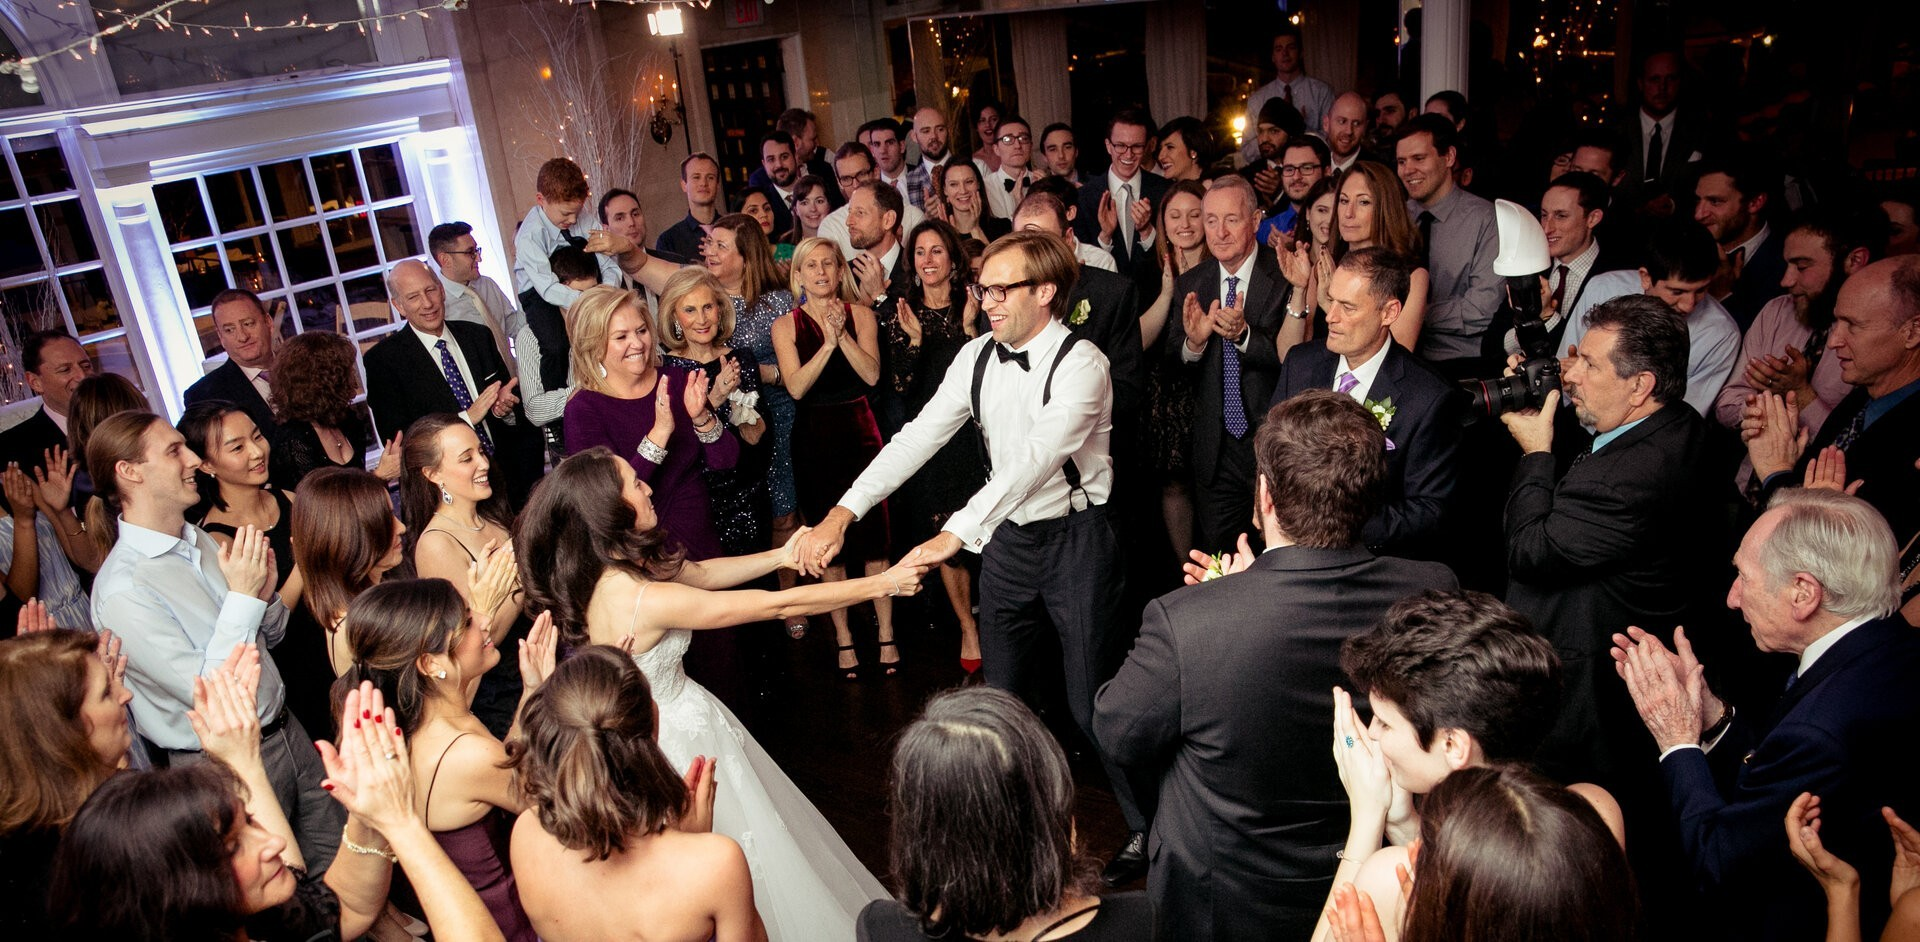 fun NJ wedding dj